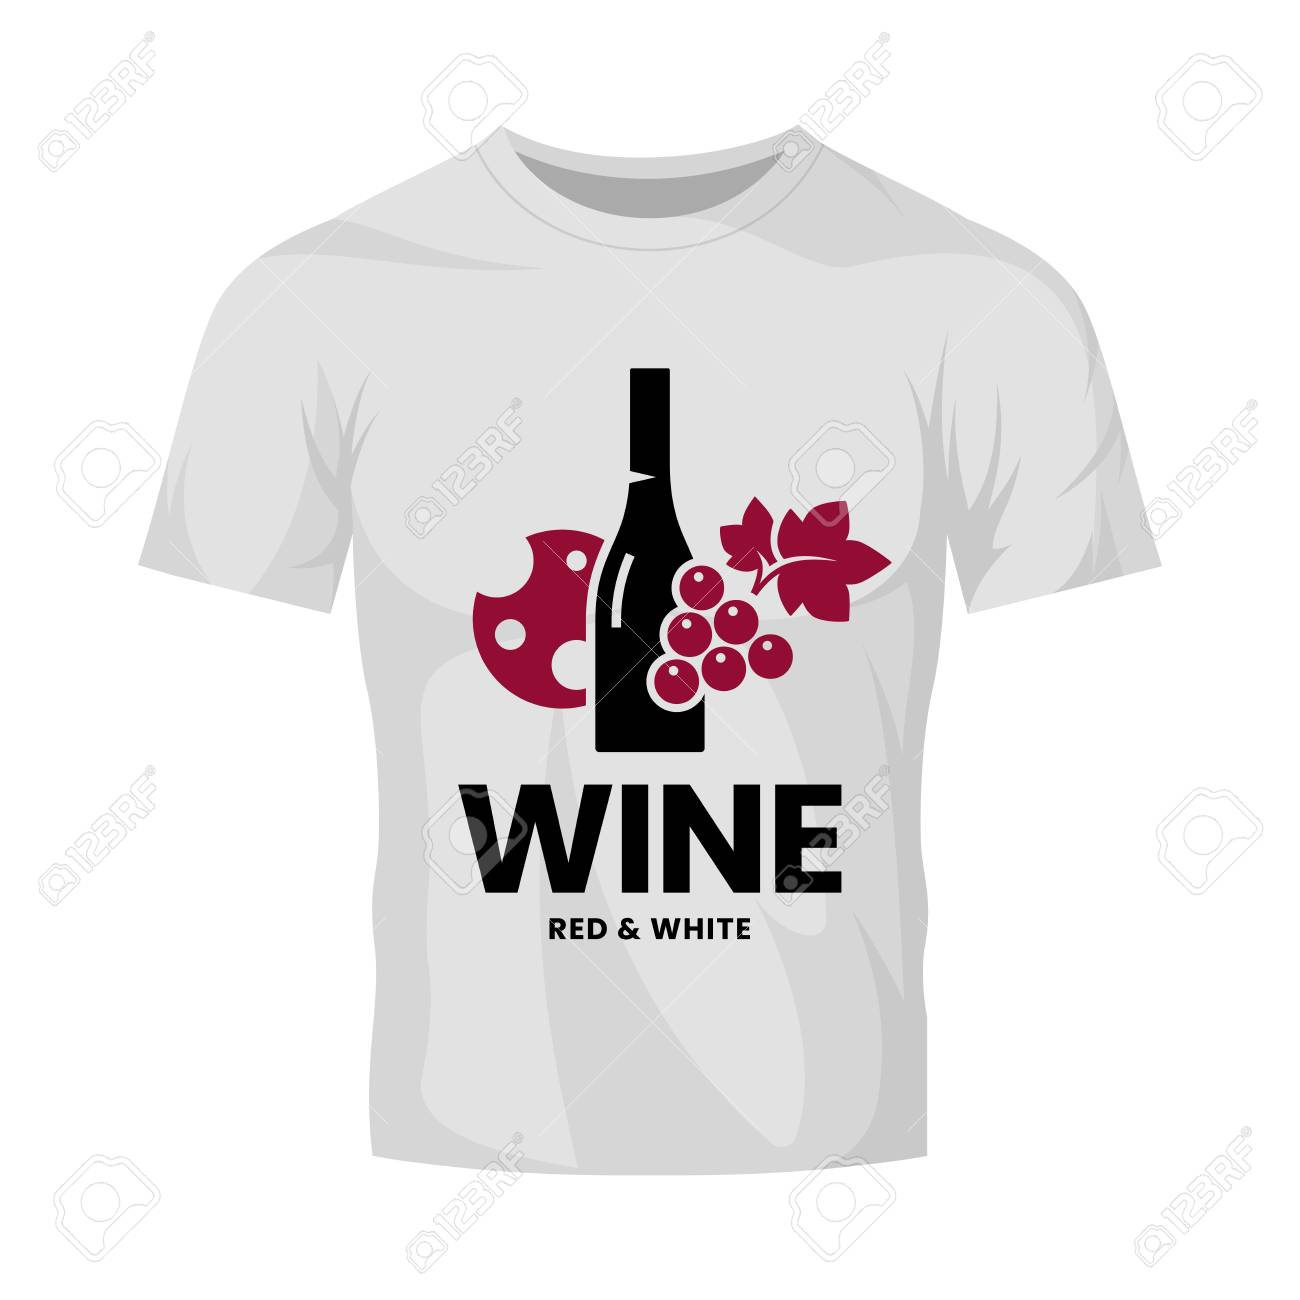 Modern wine vector logo sign for tavern, restaurant, house, shop, store, club and cellar isolated on white t-shirt mock up. Premium quality vinery logotype illustration. Fashion badge design template. - 126498807